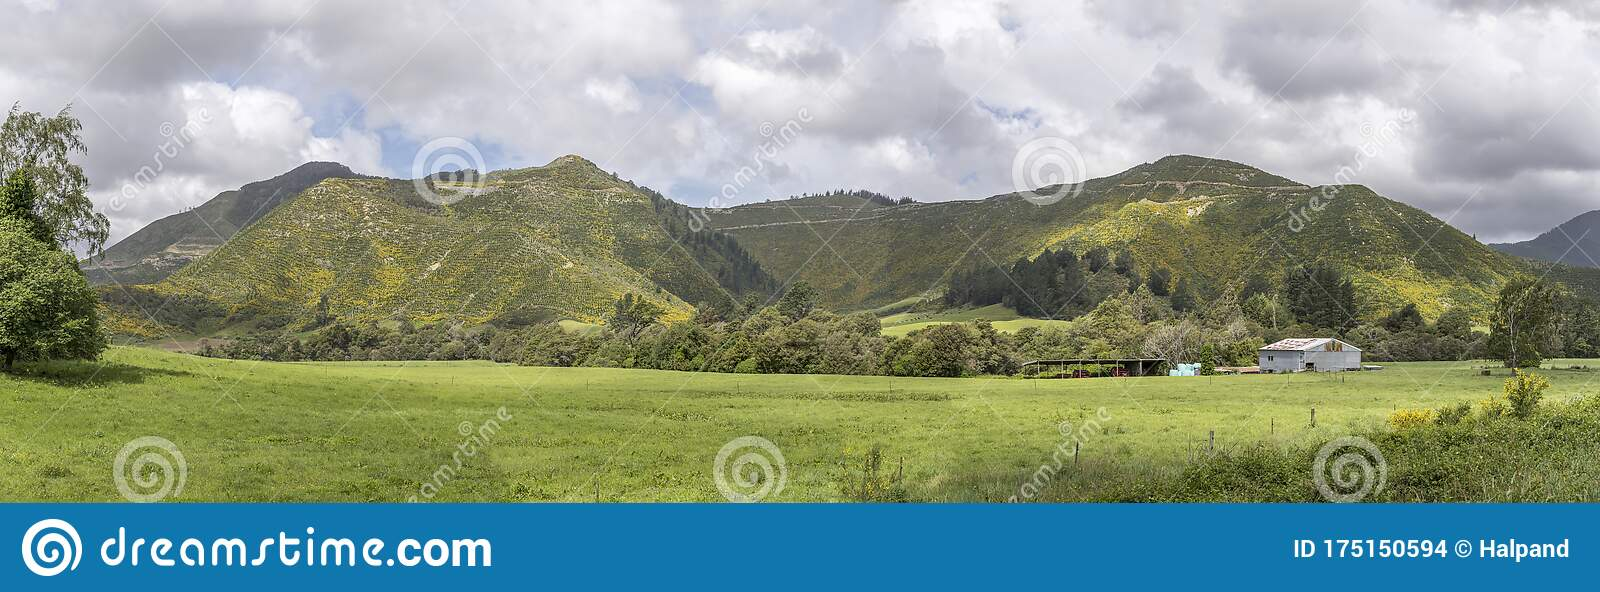 Blossoming Broom Shrubs On Slopes In Hilly Green Countryside At Rai Valley Marlborough New Zealand Stock Photo Image Of Touristic Fields 175150594